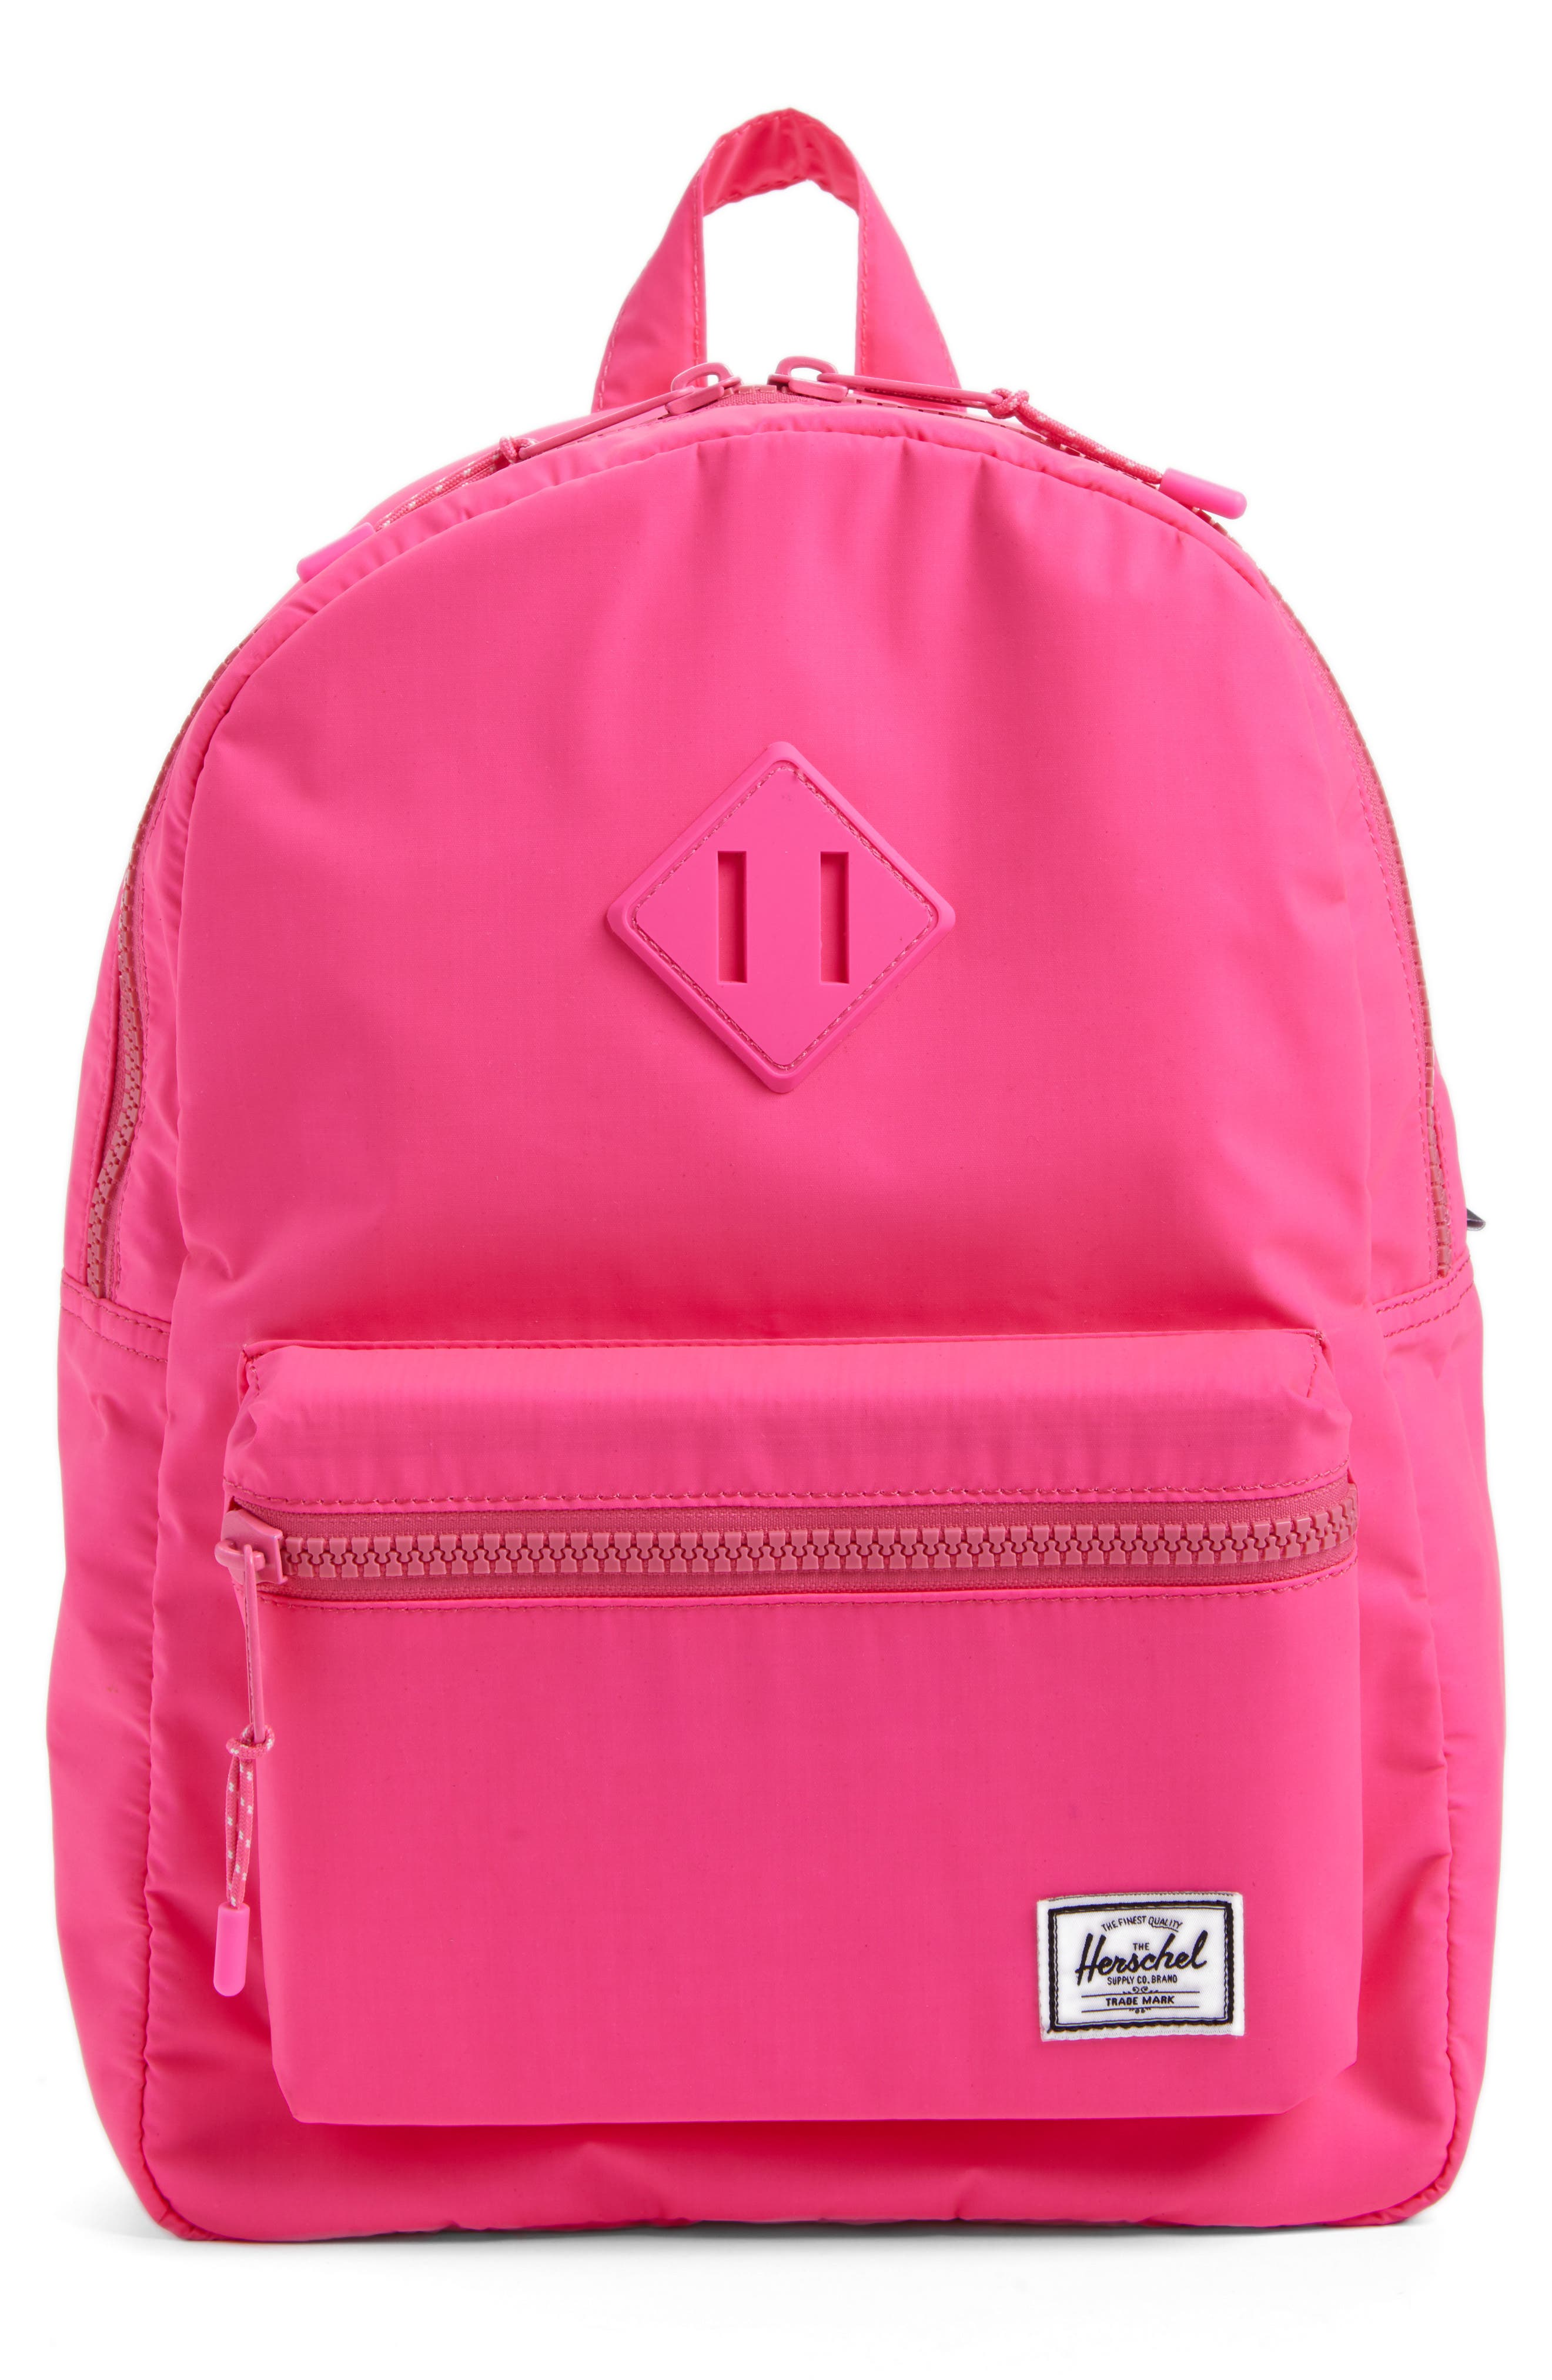 Heritage Backpack,                             Main thumbnail 1, color,                             650